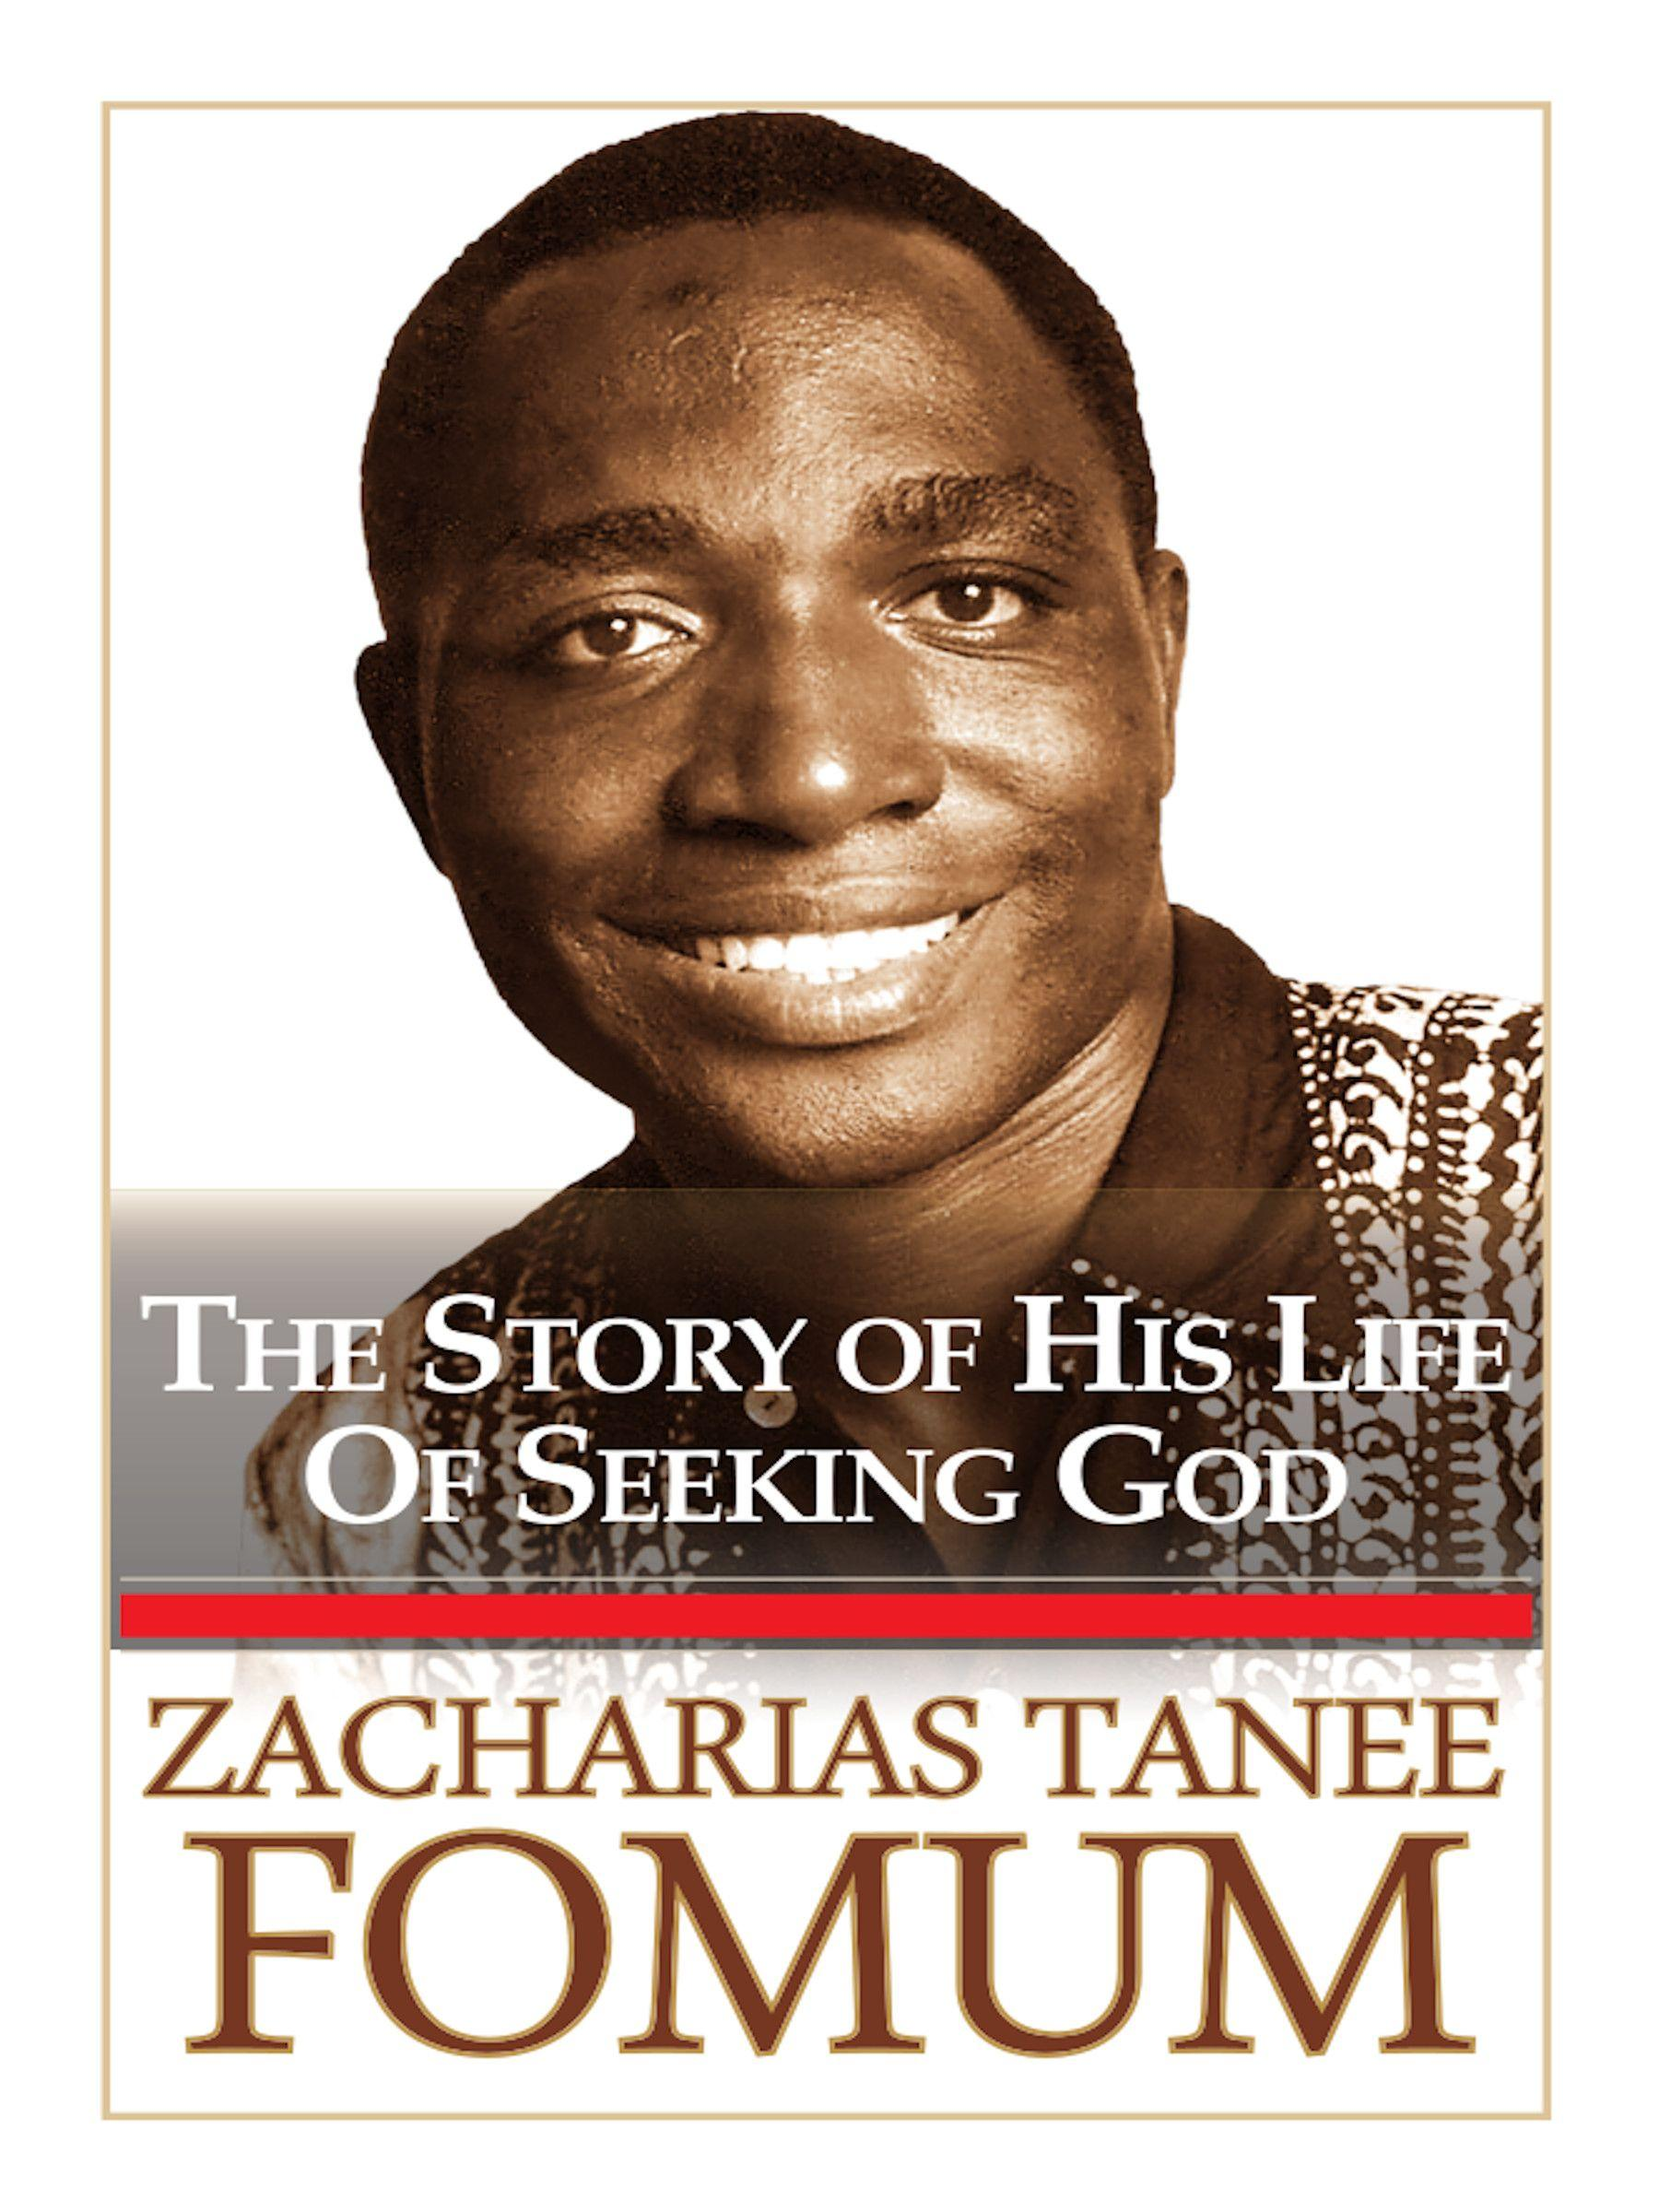 The Story of His Life of Seeking God